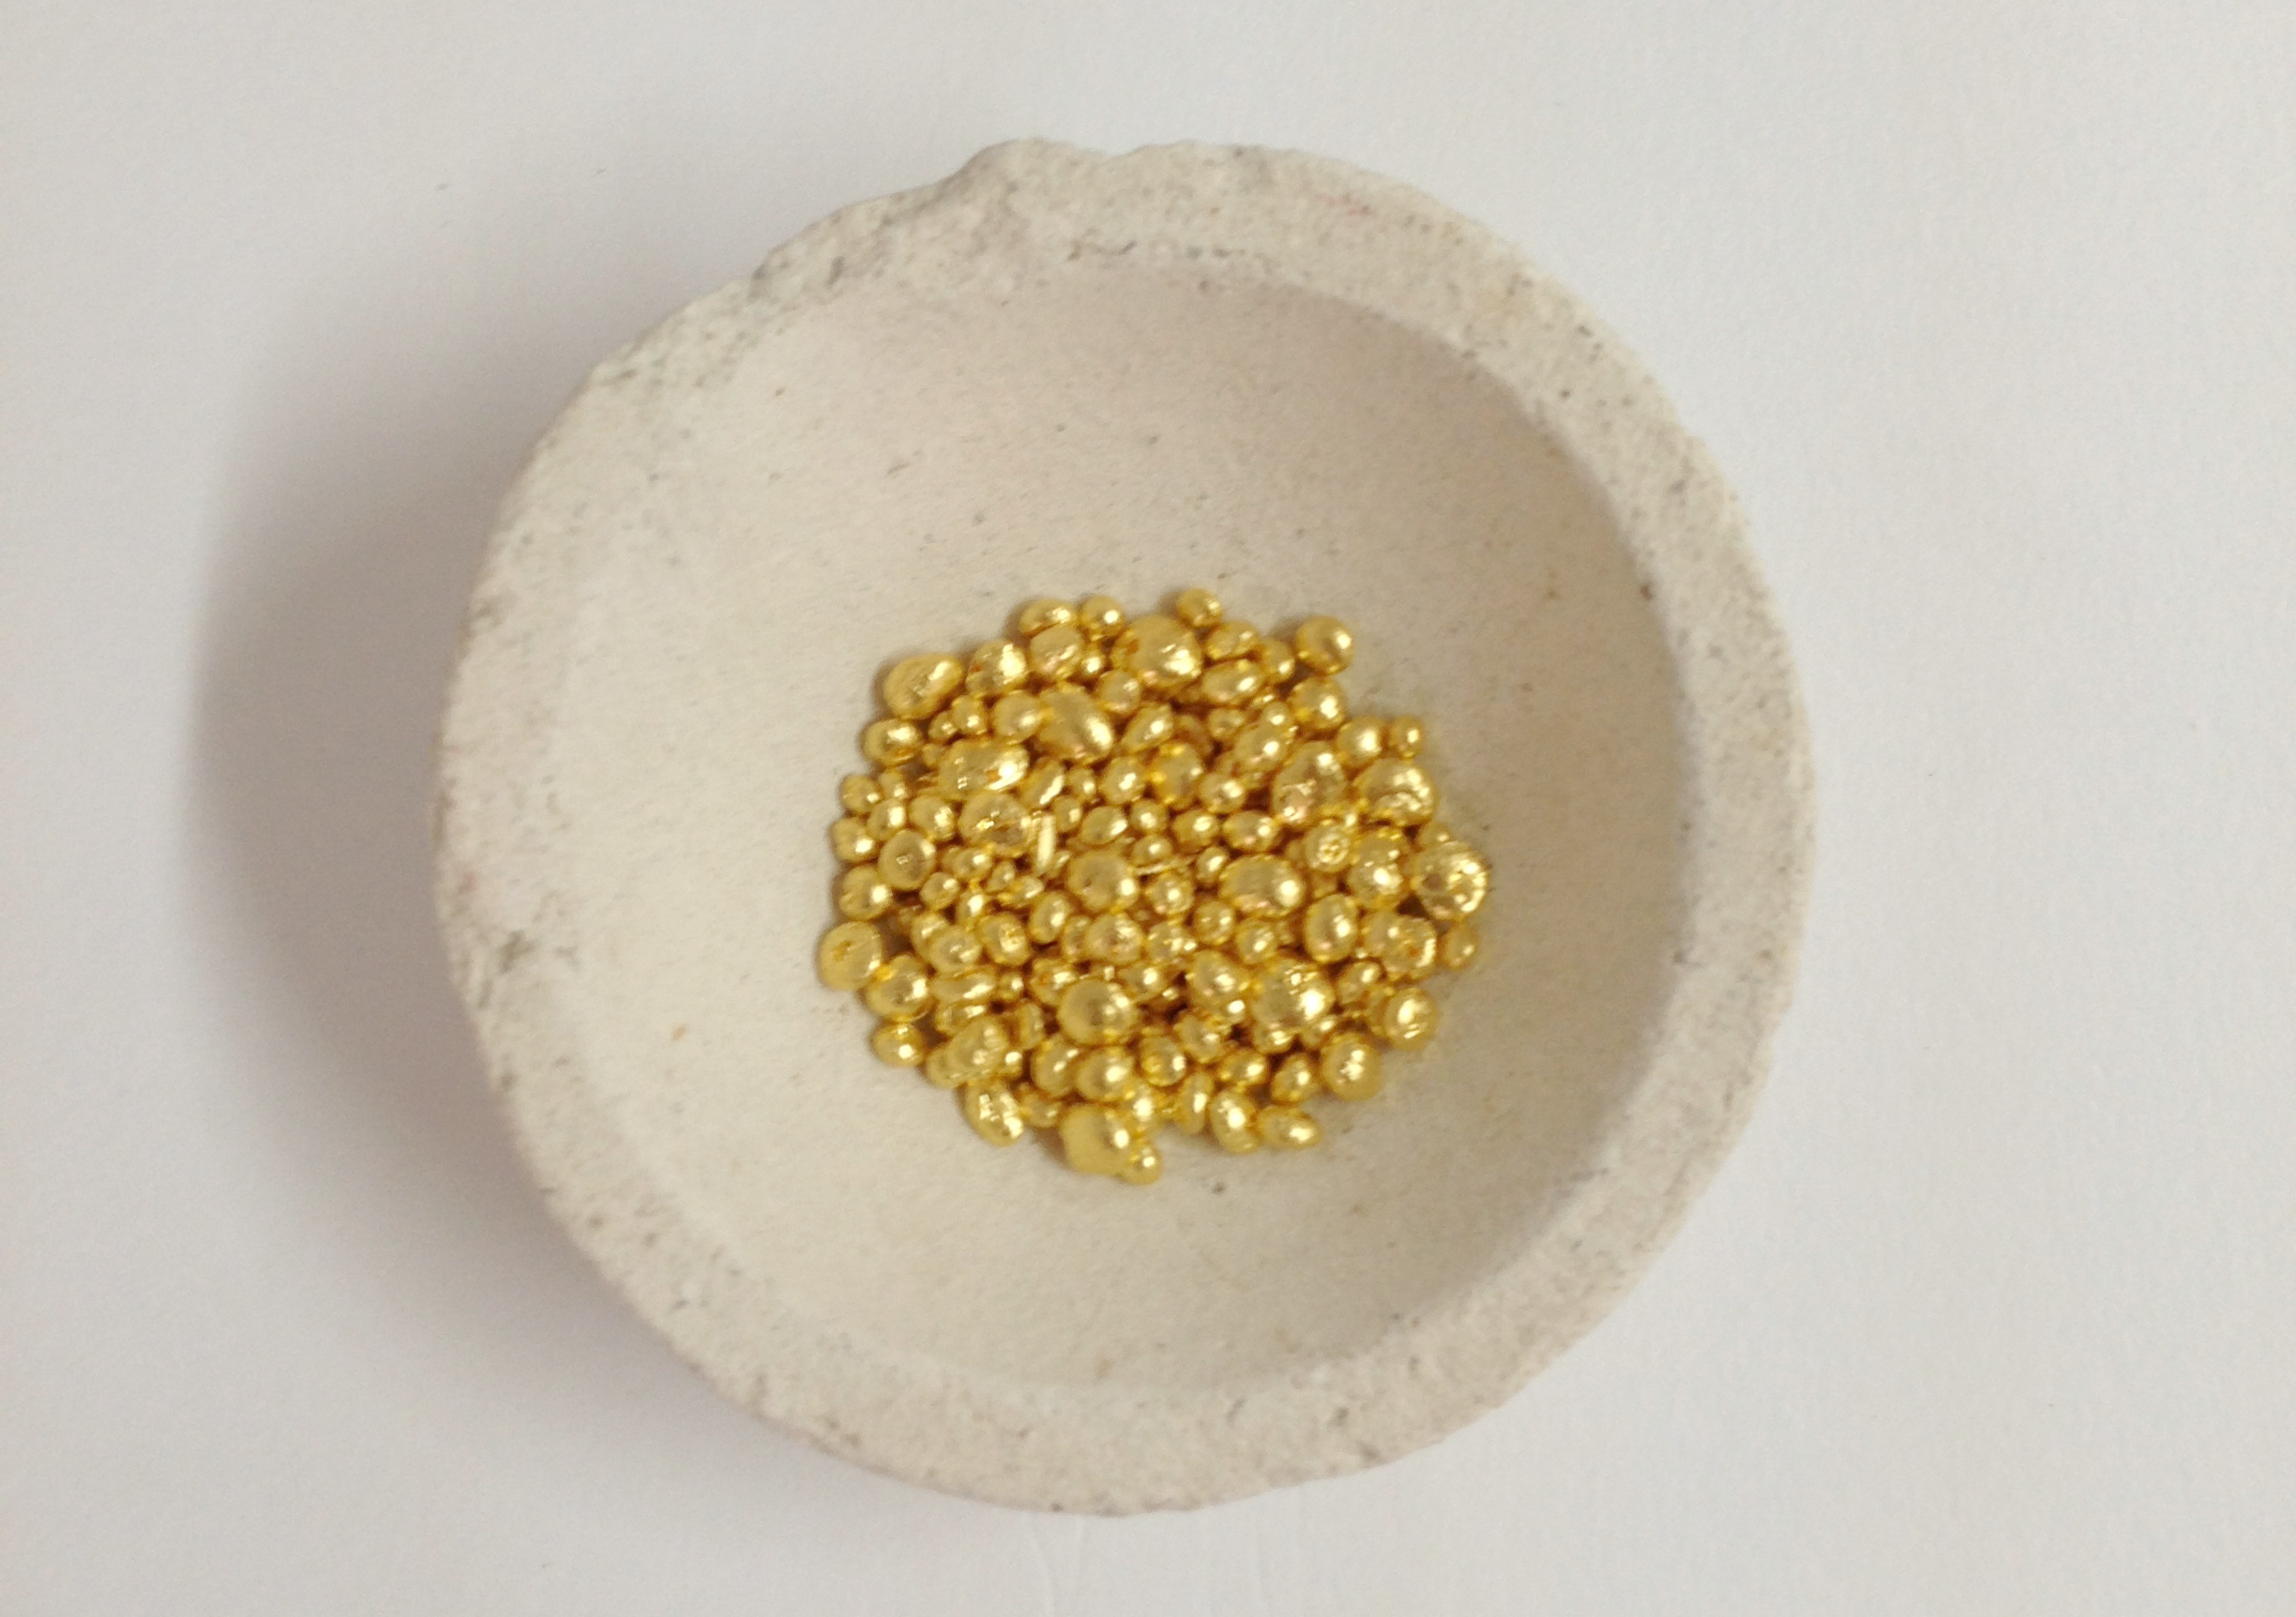 fine gold nugget already to melt